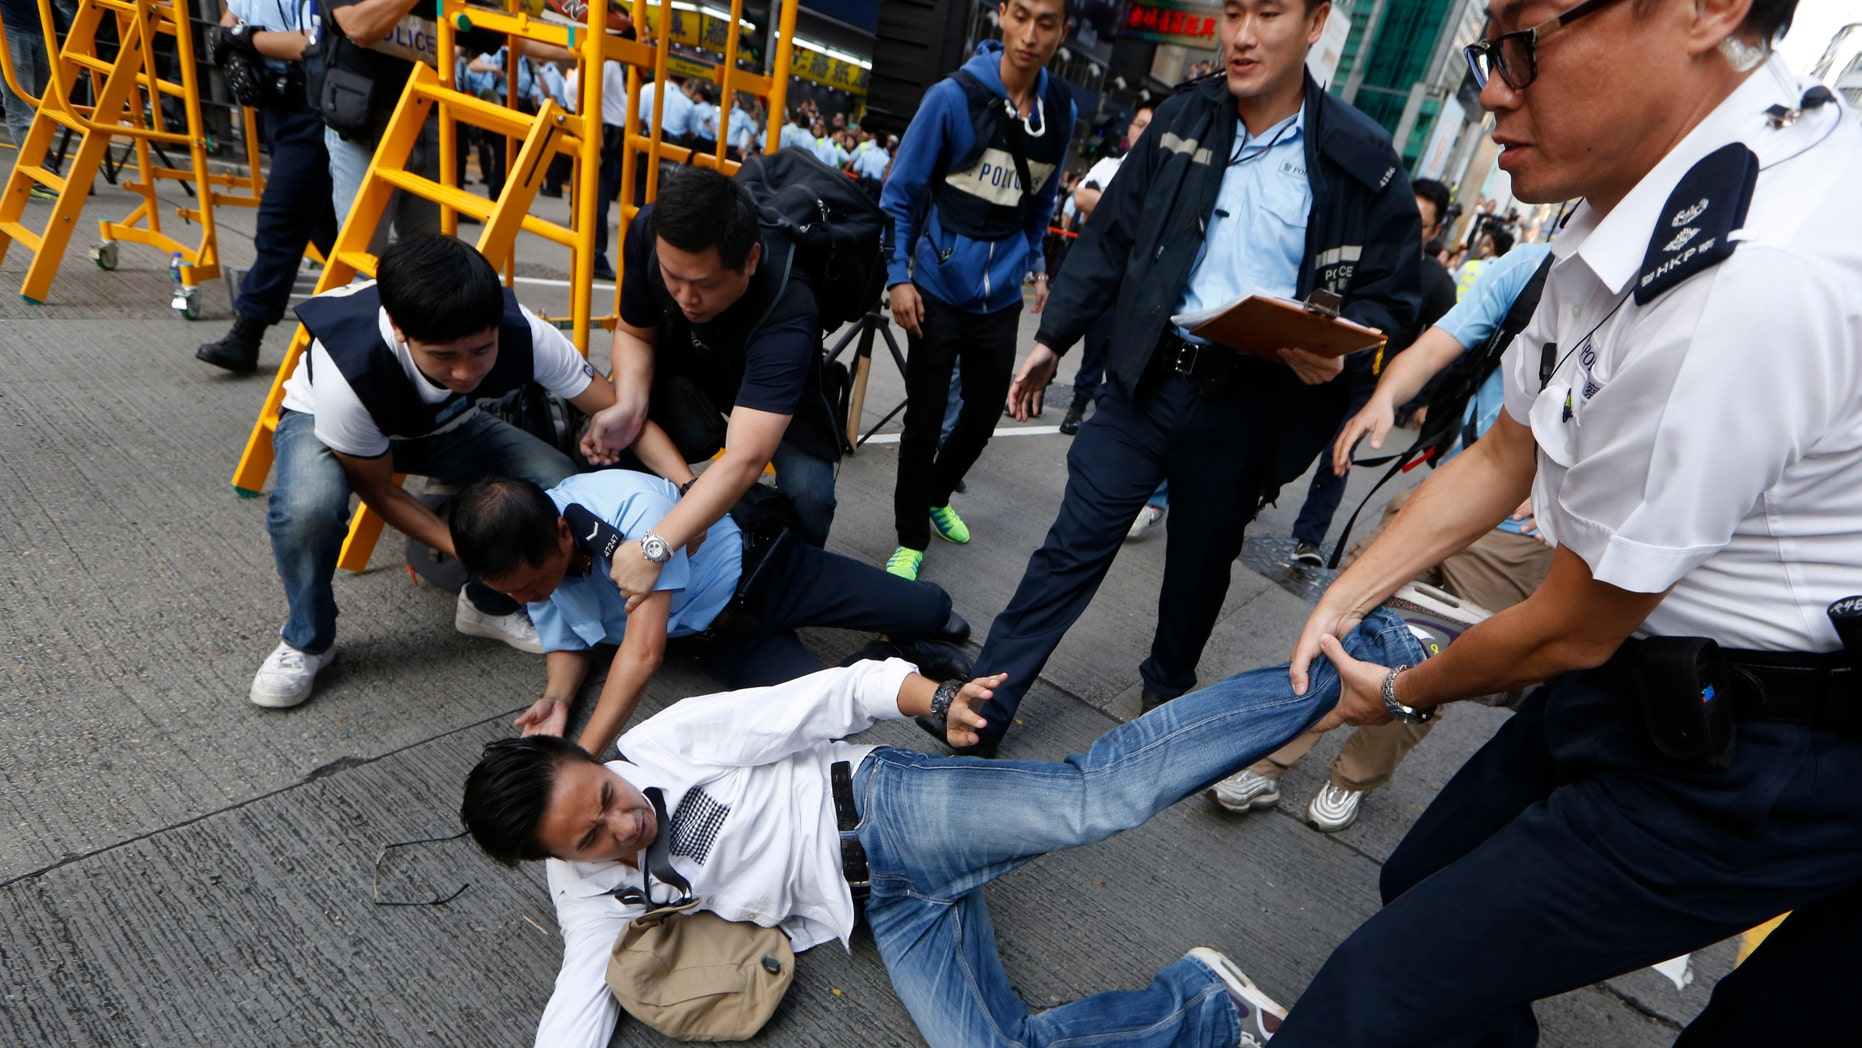 Nov. 25, 2014: A man is taken away by police officers as workers start clearing away barricades at an occupied area in Mong Kok district of Hong Kong